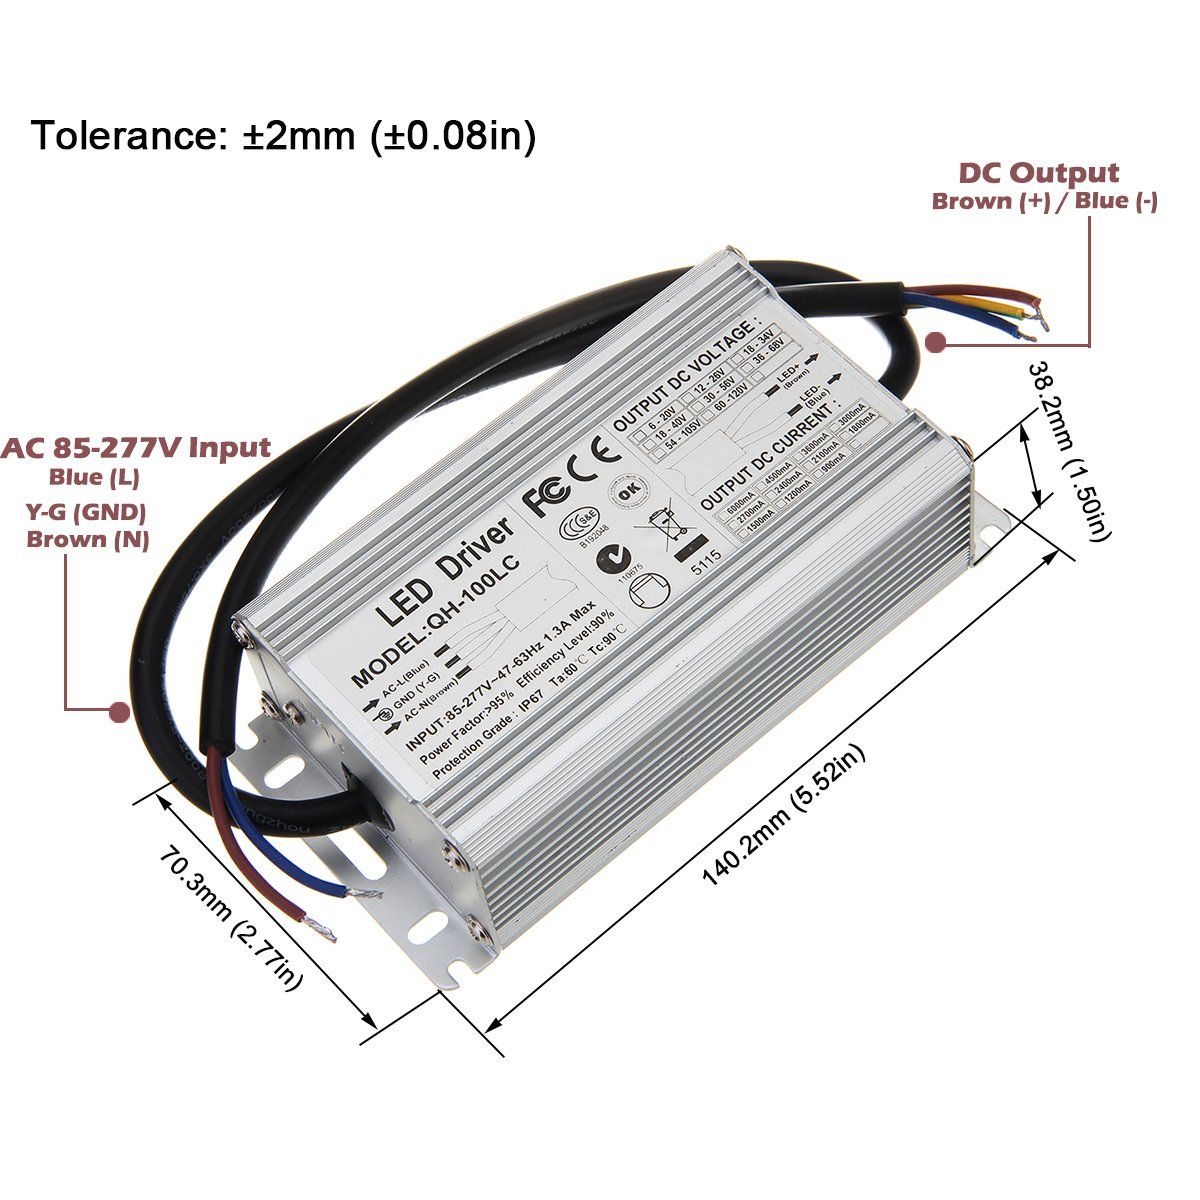 Chanzon Led Driver 3000ma Constant Current Output 21v 34v In85 Watt Circuit At 220v 110v Mains Voltage Diagram 277v Ac Dc 7 10x10 70w 80w 90w 100w Ip67 Waterproof High Power Supply 3000 Ma Lighting